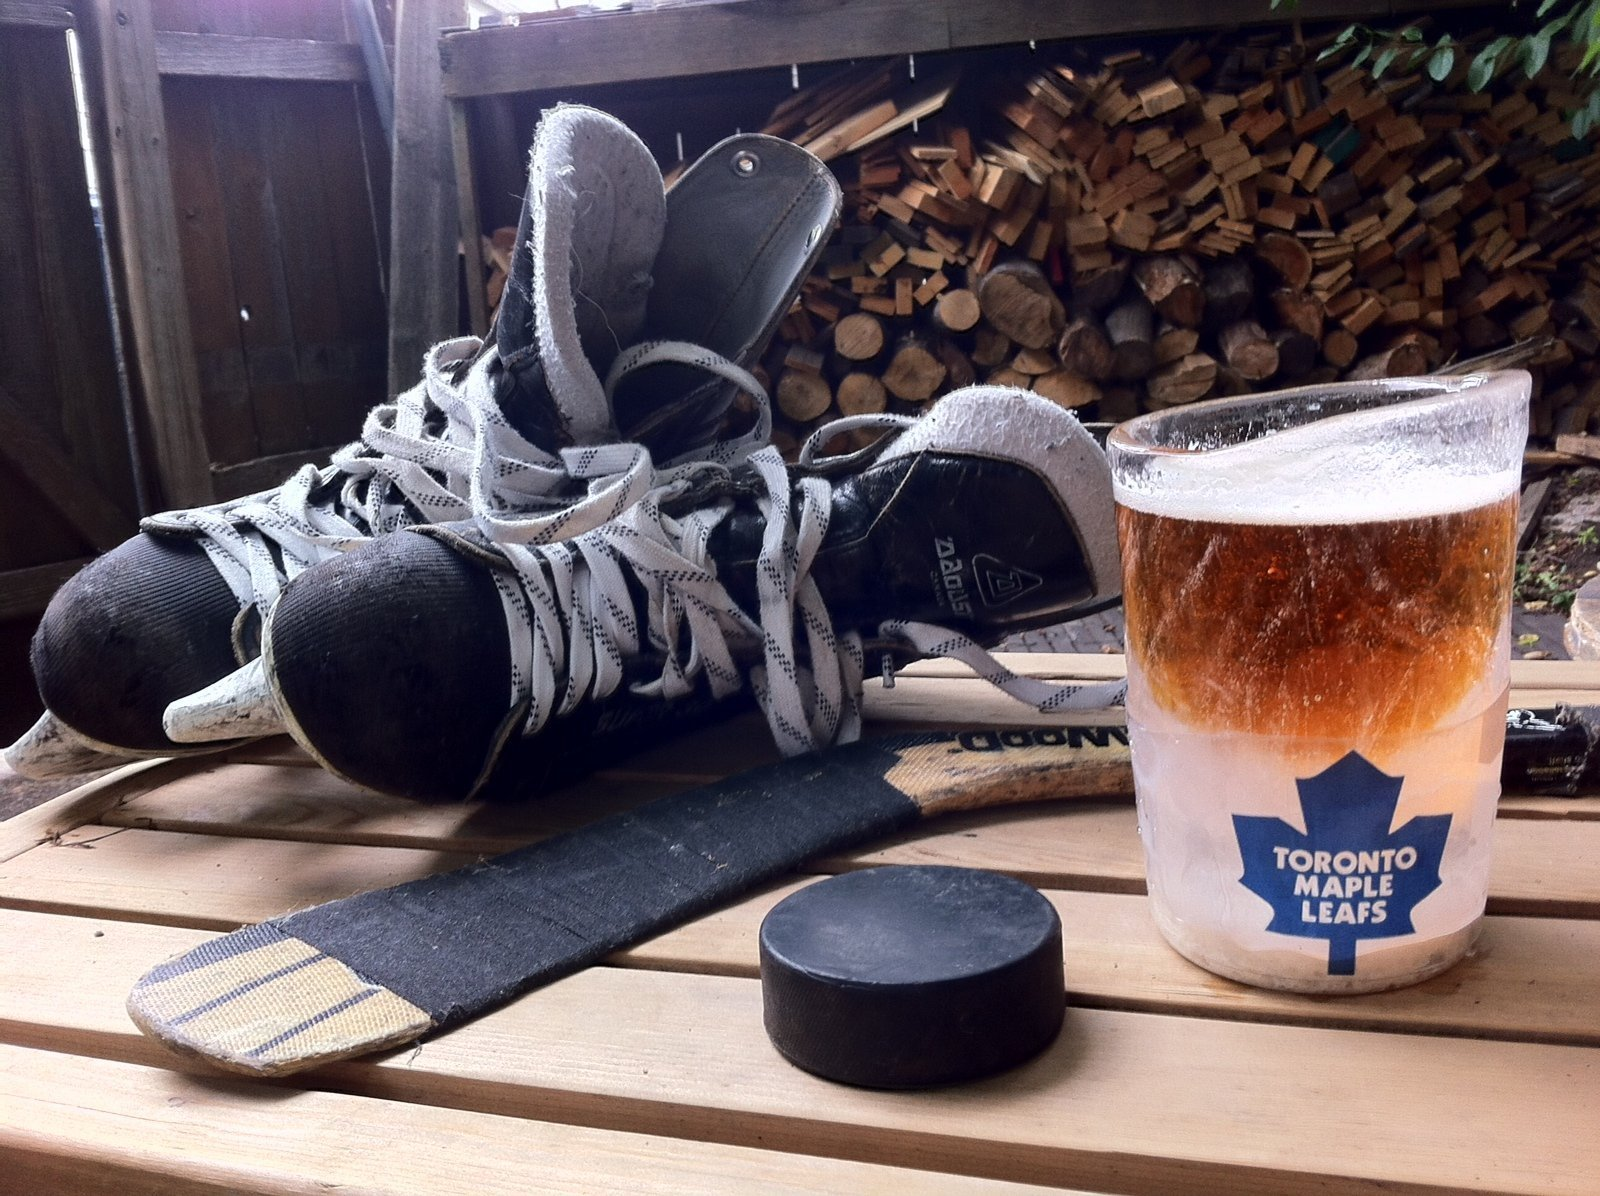 nICE mug and NHL with hockey stick and skates and puck.  A drinking glass made out of ice.